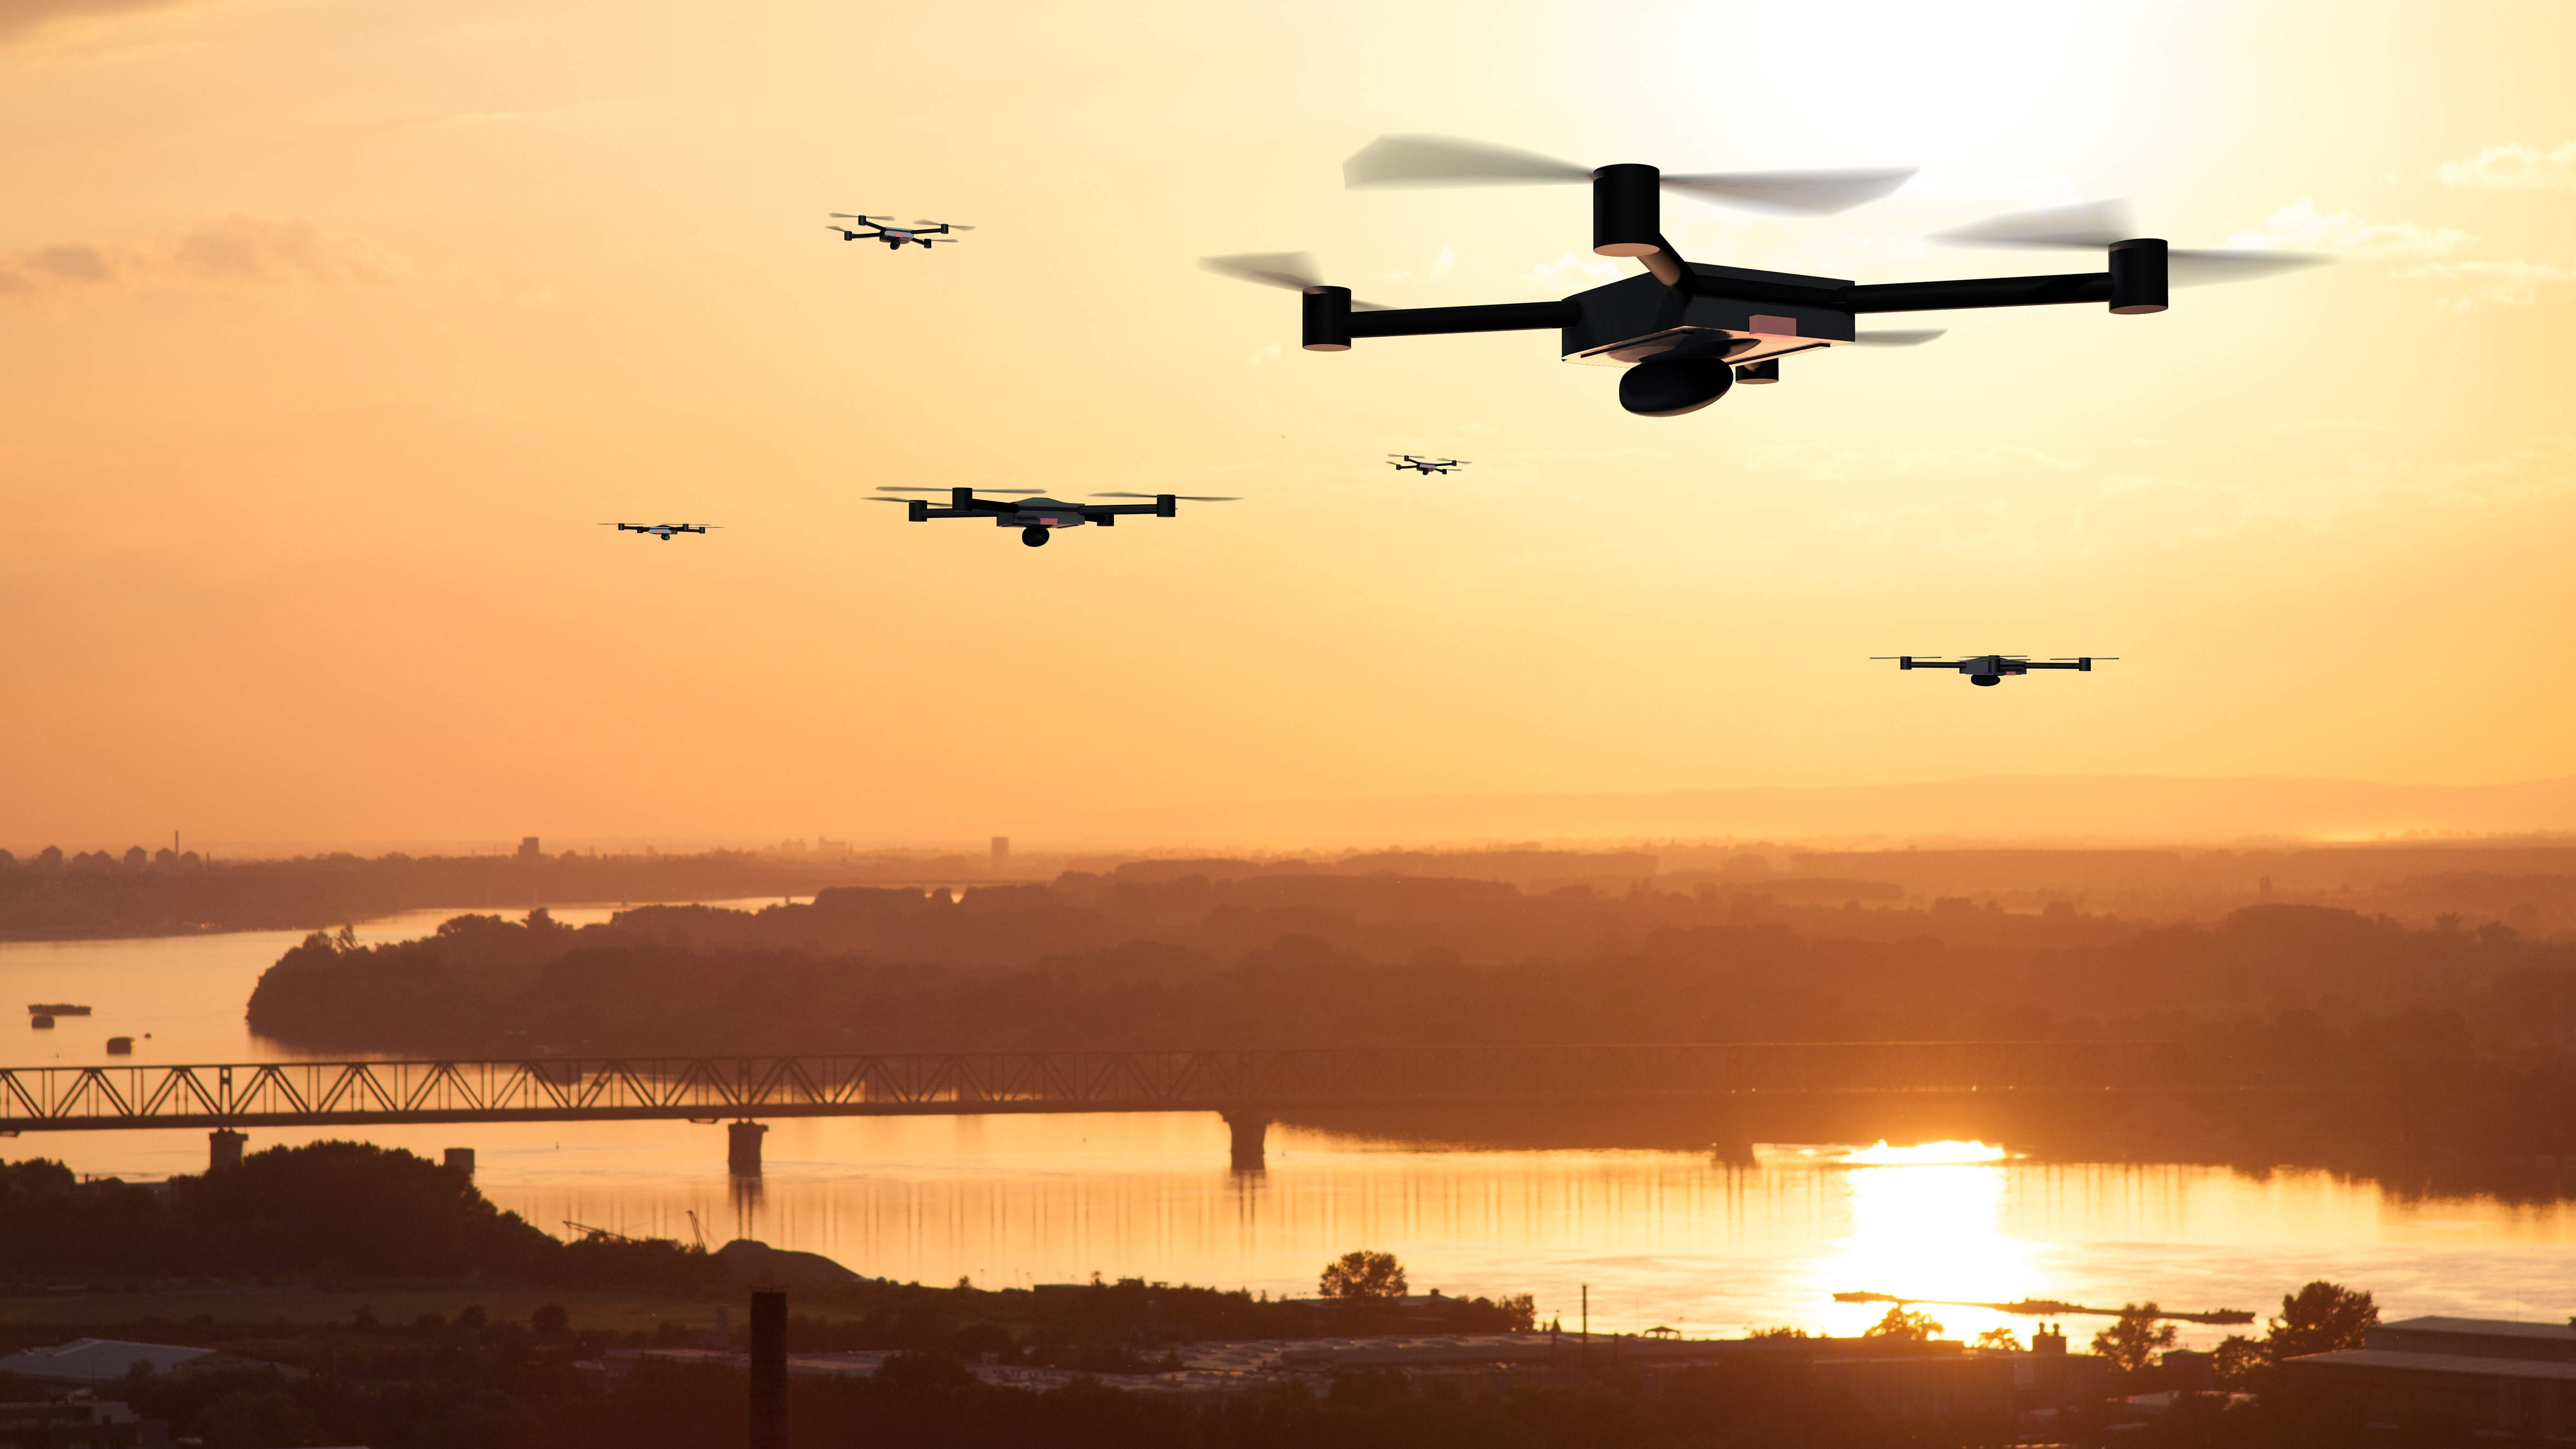 Drones in Sunset